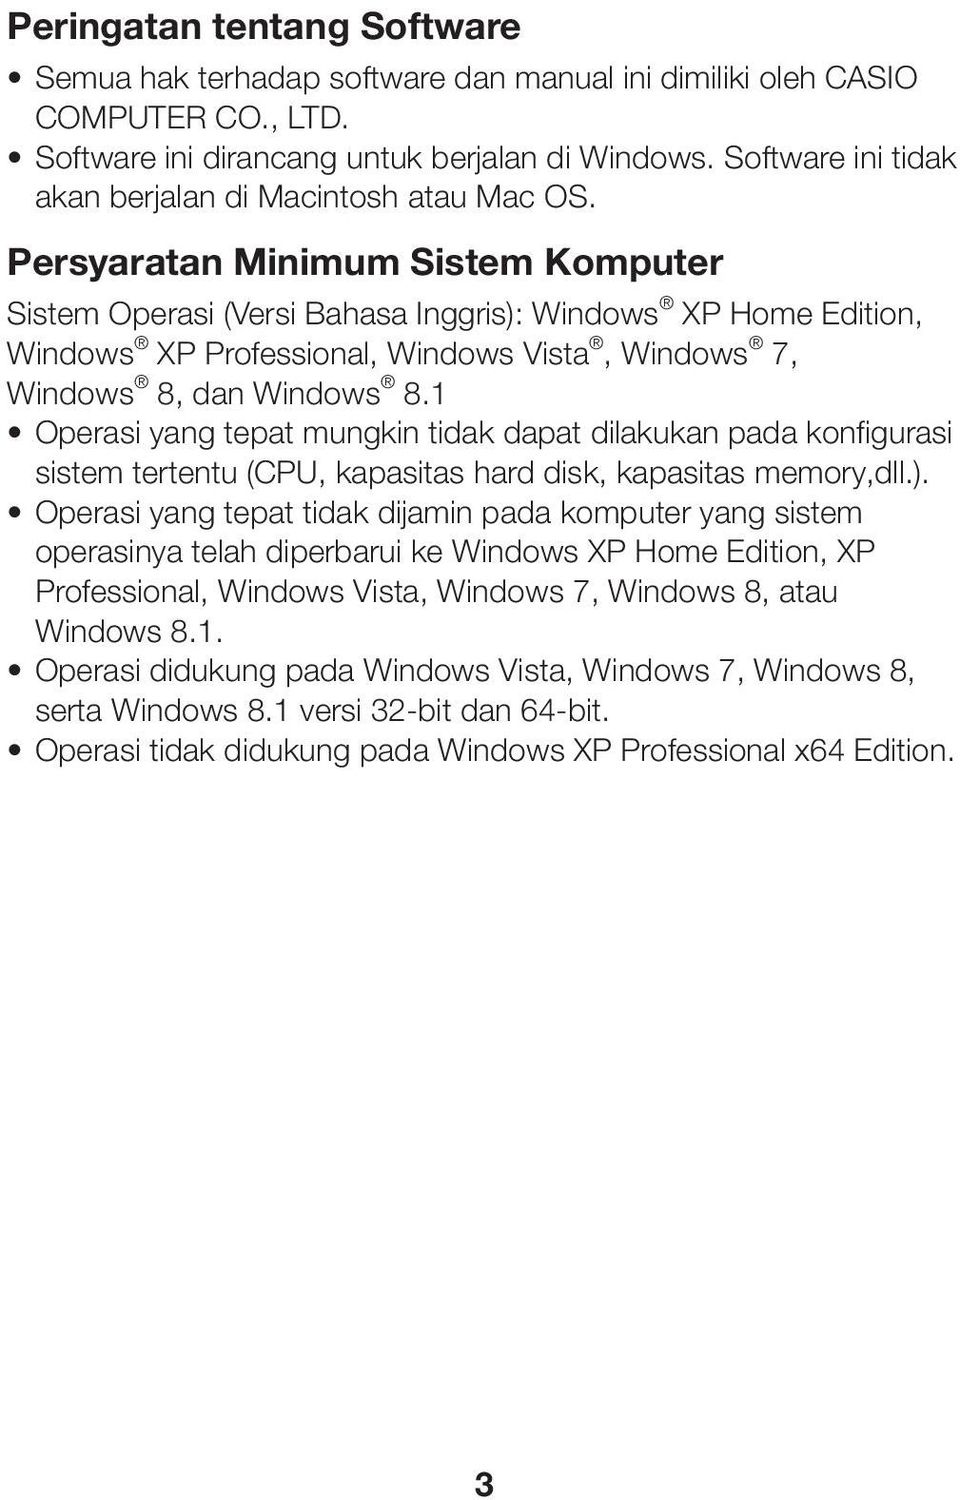 Persyaratan Minimum Sistem Komputer Sistem Operasi (Versi Bahasa Inggris): Windows XP Home Edition, Windows XP Professional, Windows Vista, Windows 7, Windows 8, dan Windows 8.